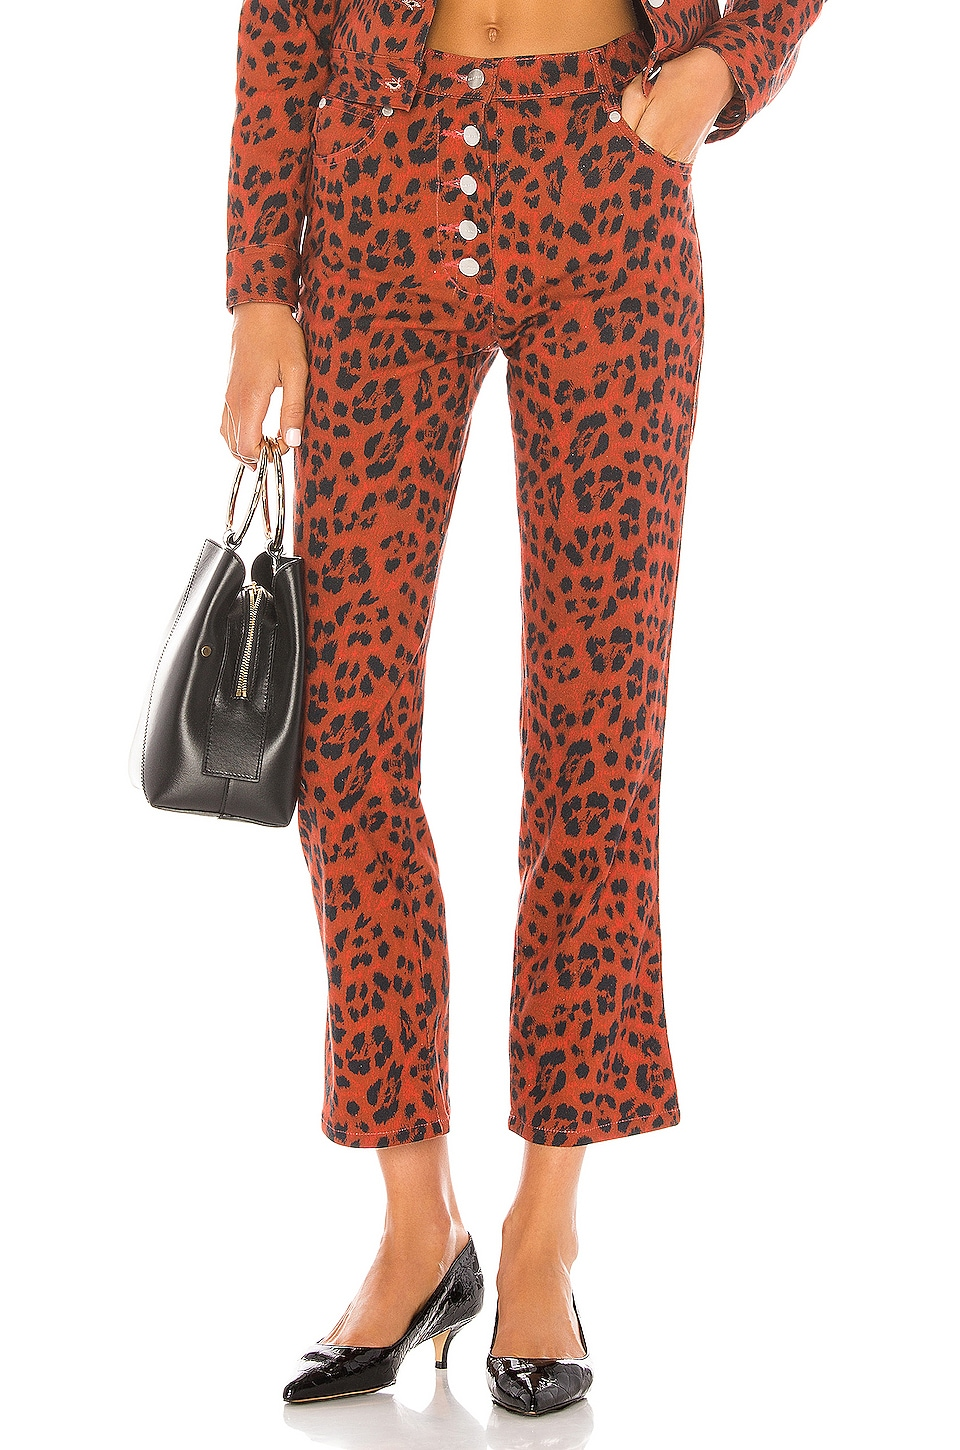 Miaou Junior Pant in Red Leopard